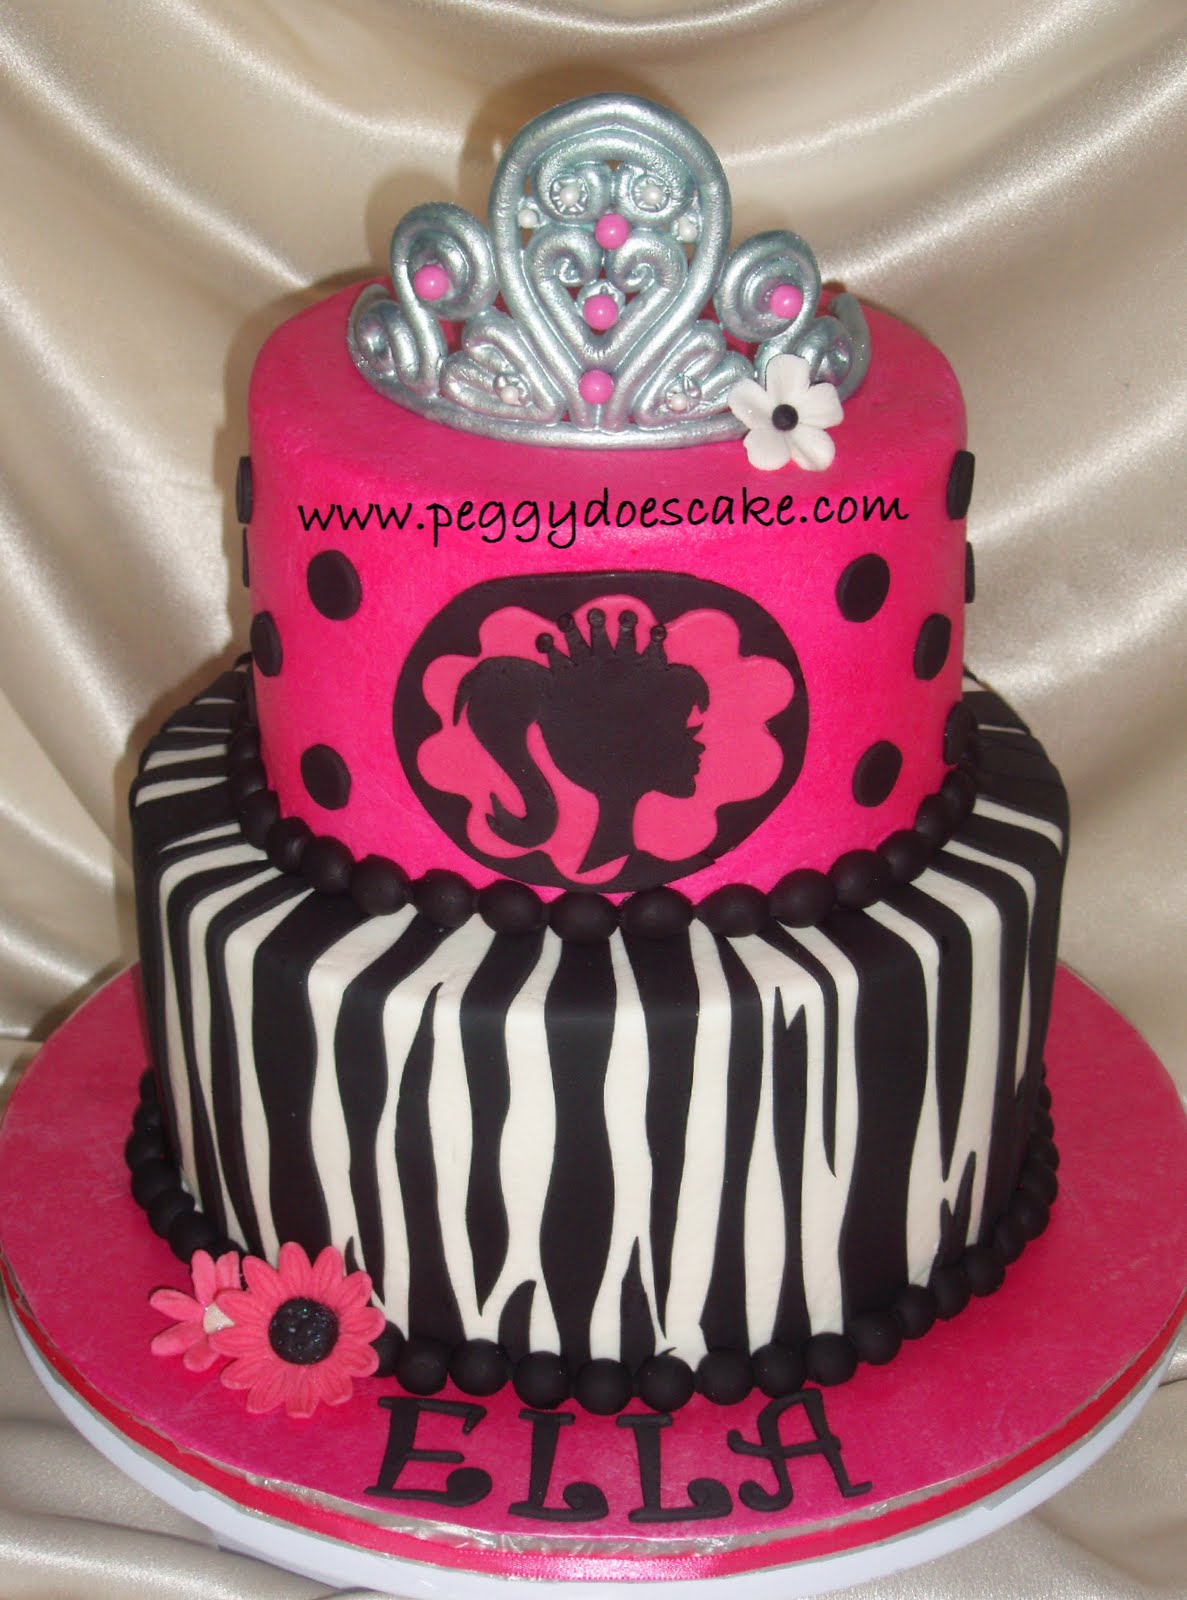 Peggy Does Cake Ellas Modern Barbie Cake Click any photo to